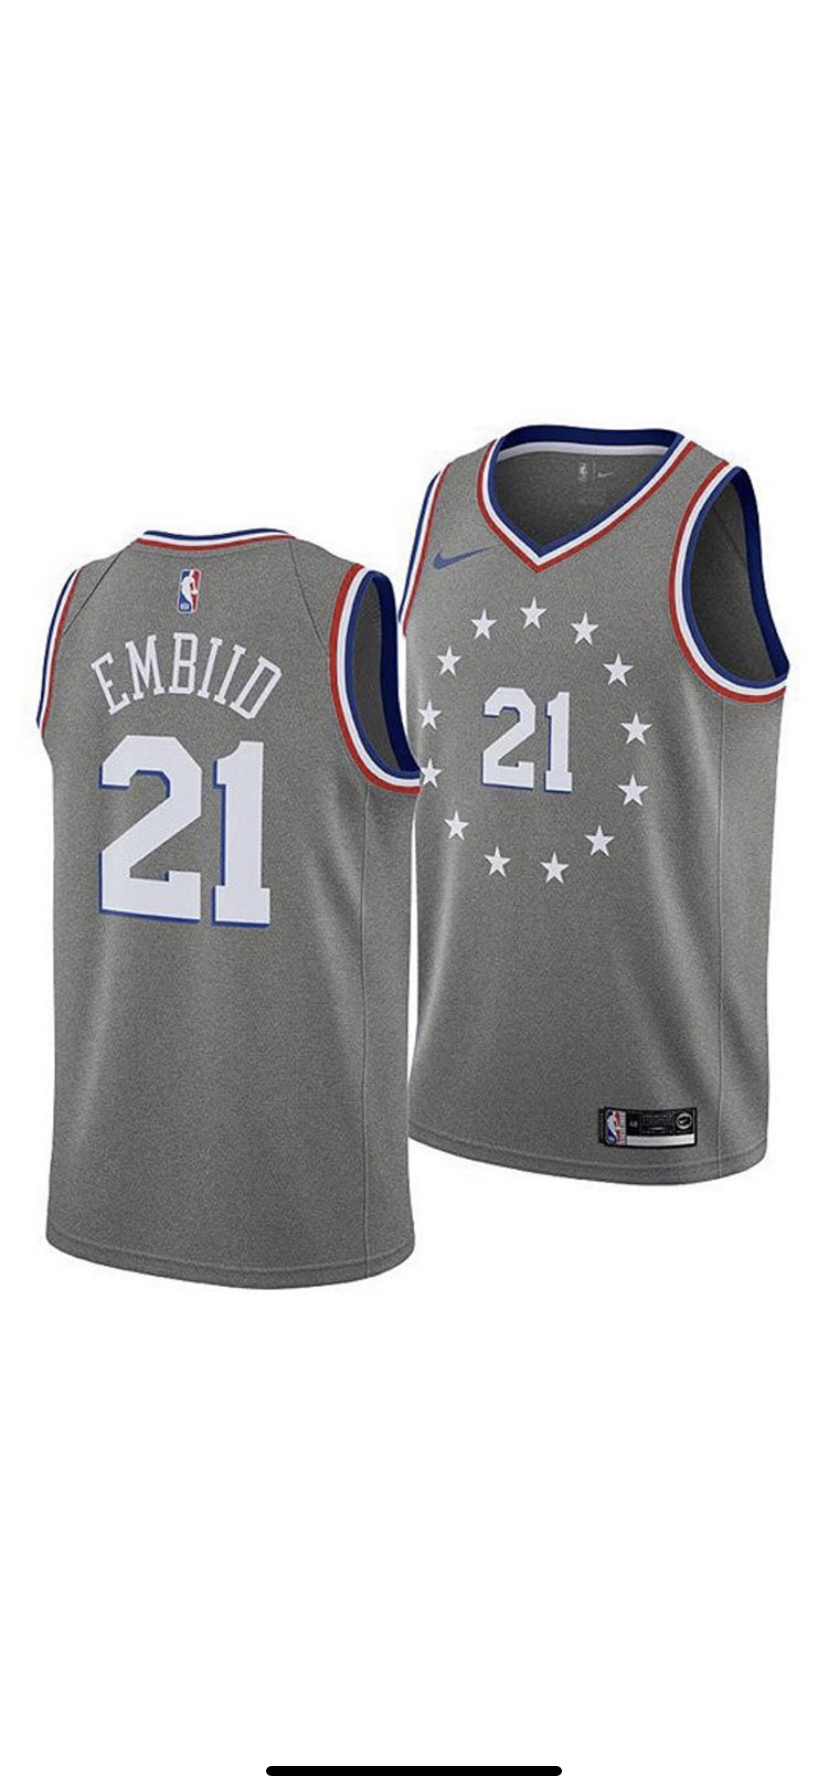 Image of Joel embiid city jerseys